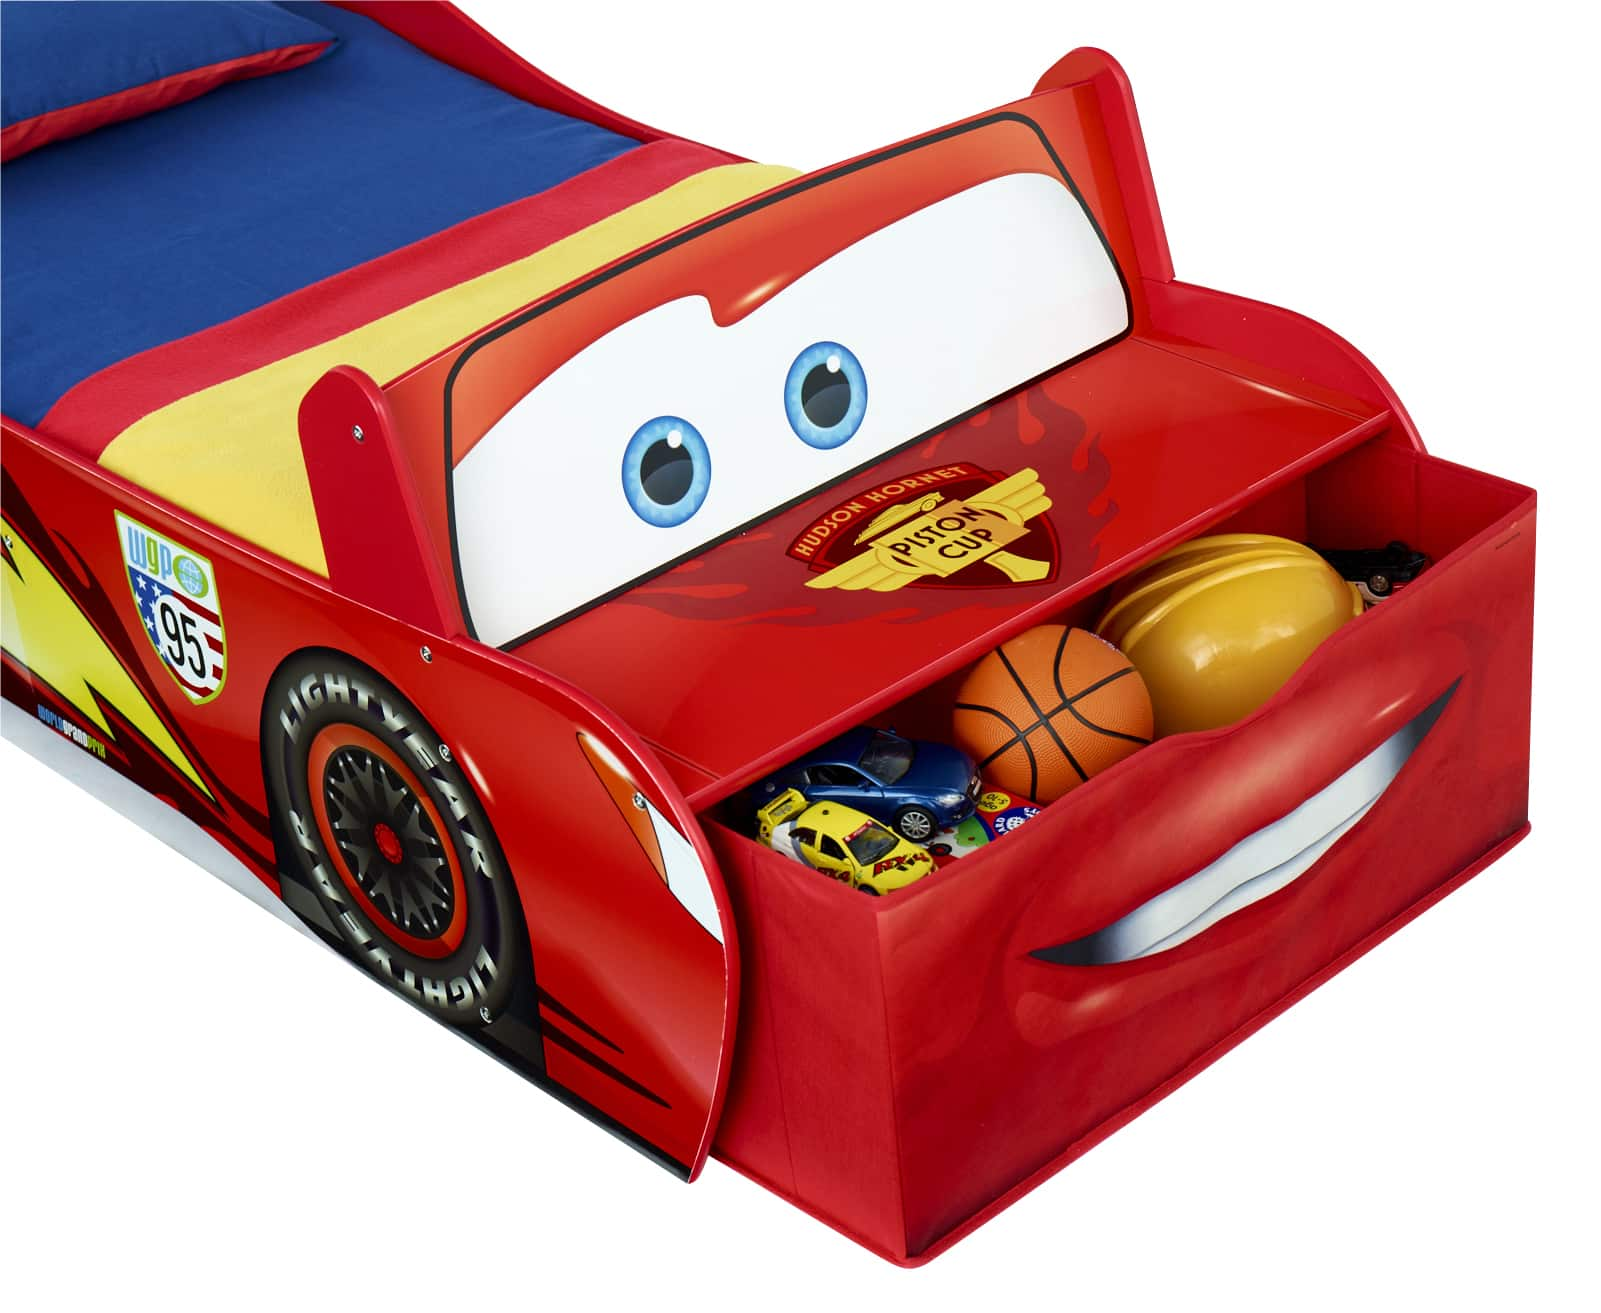 lit enfant cars lit enfant en bois cars flash mcqueen 865189 achat rangement pour lit cars. Black Bedroom Furniture Sets. Home Design Ideas